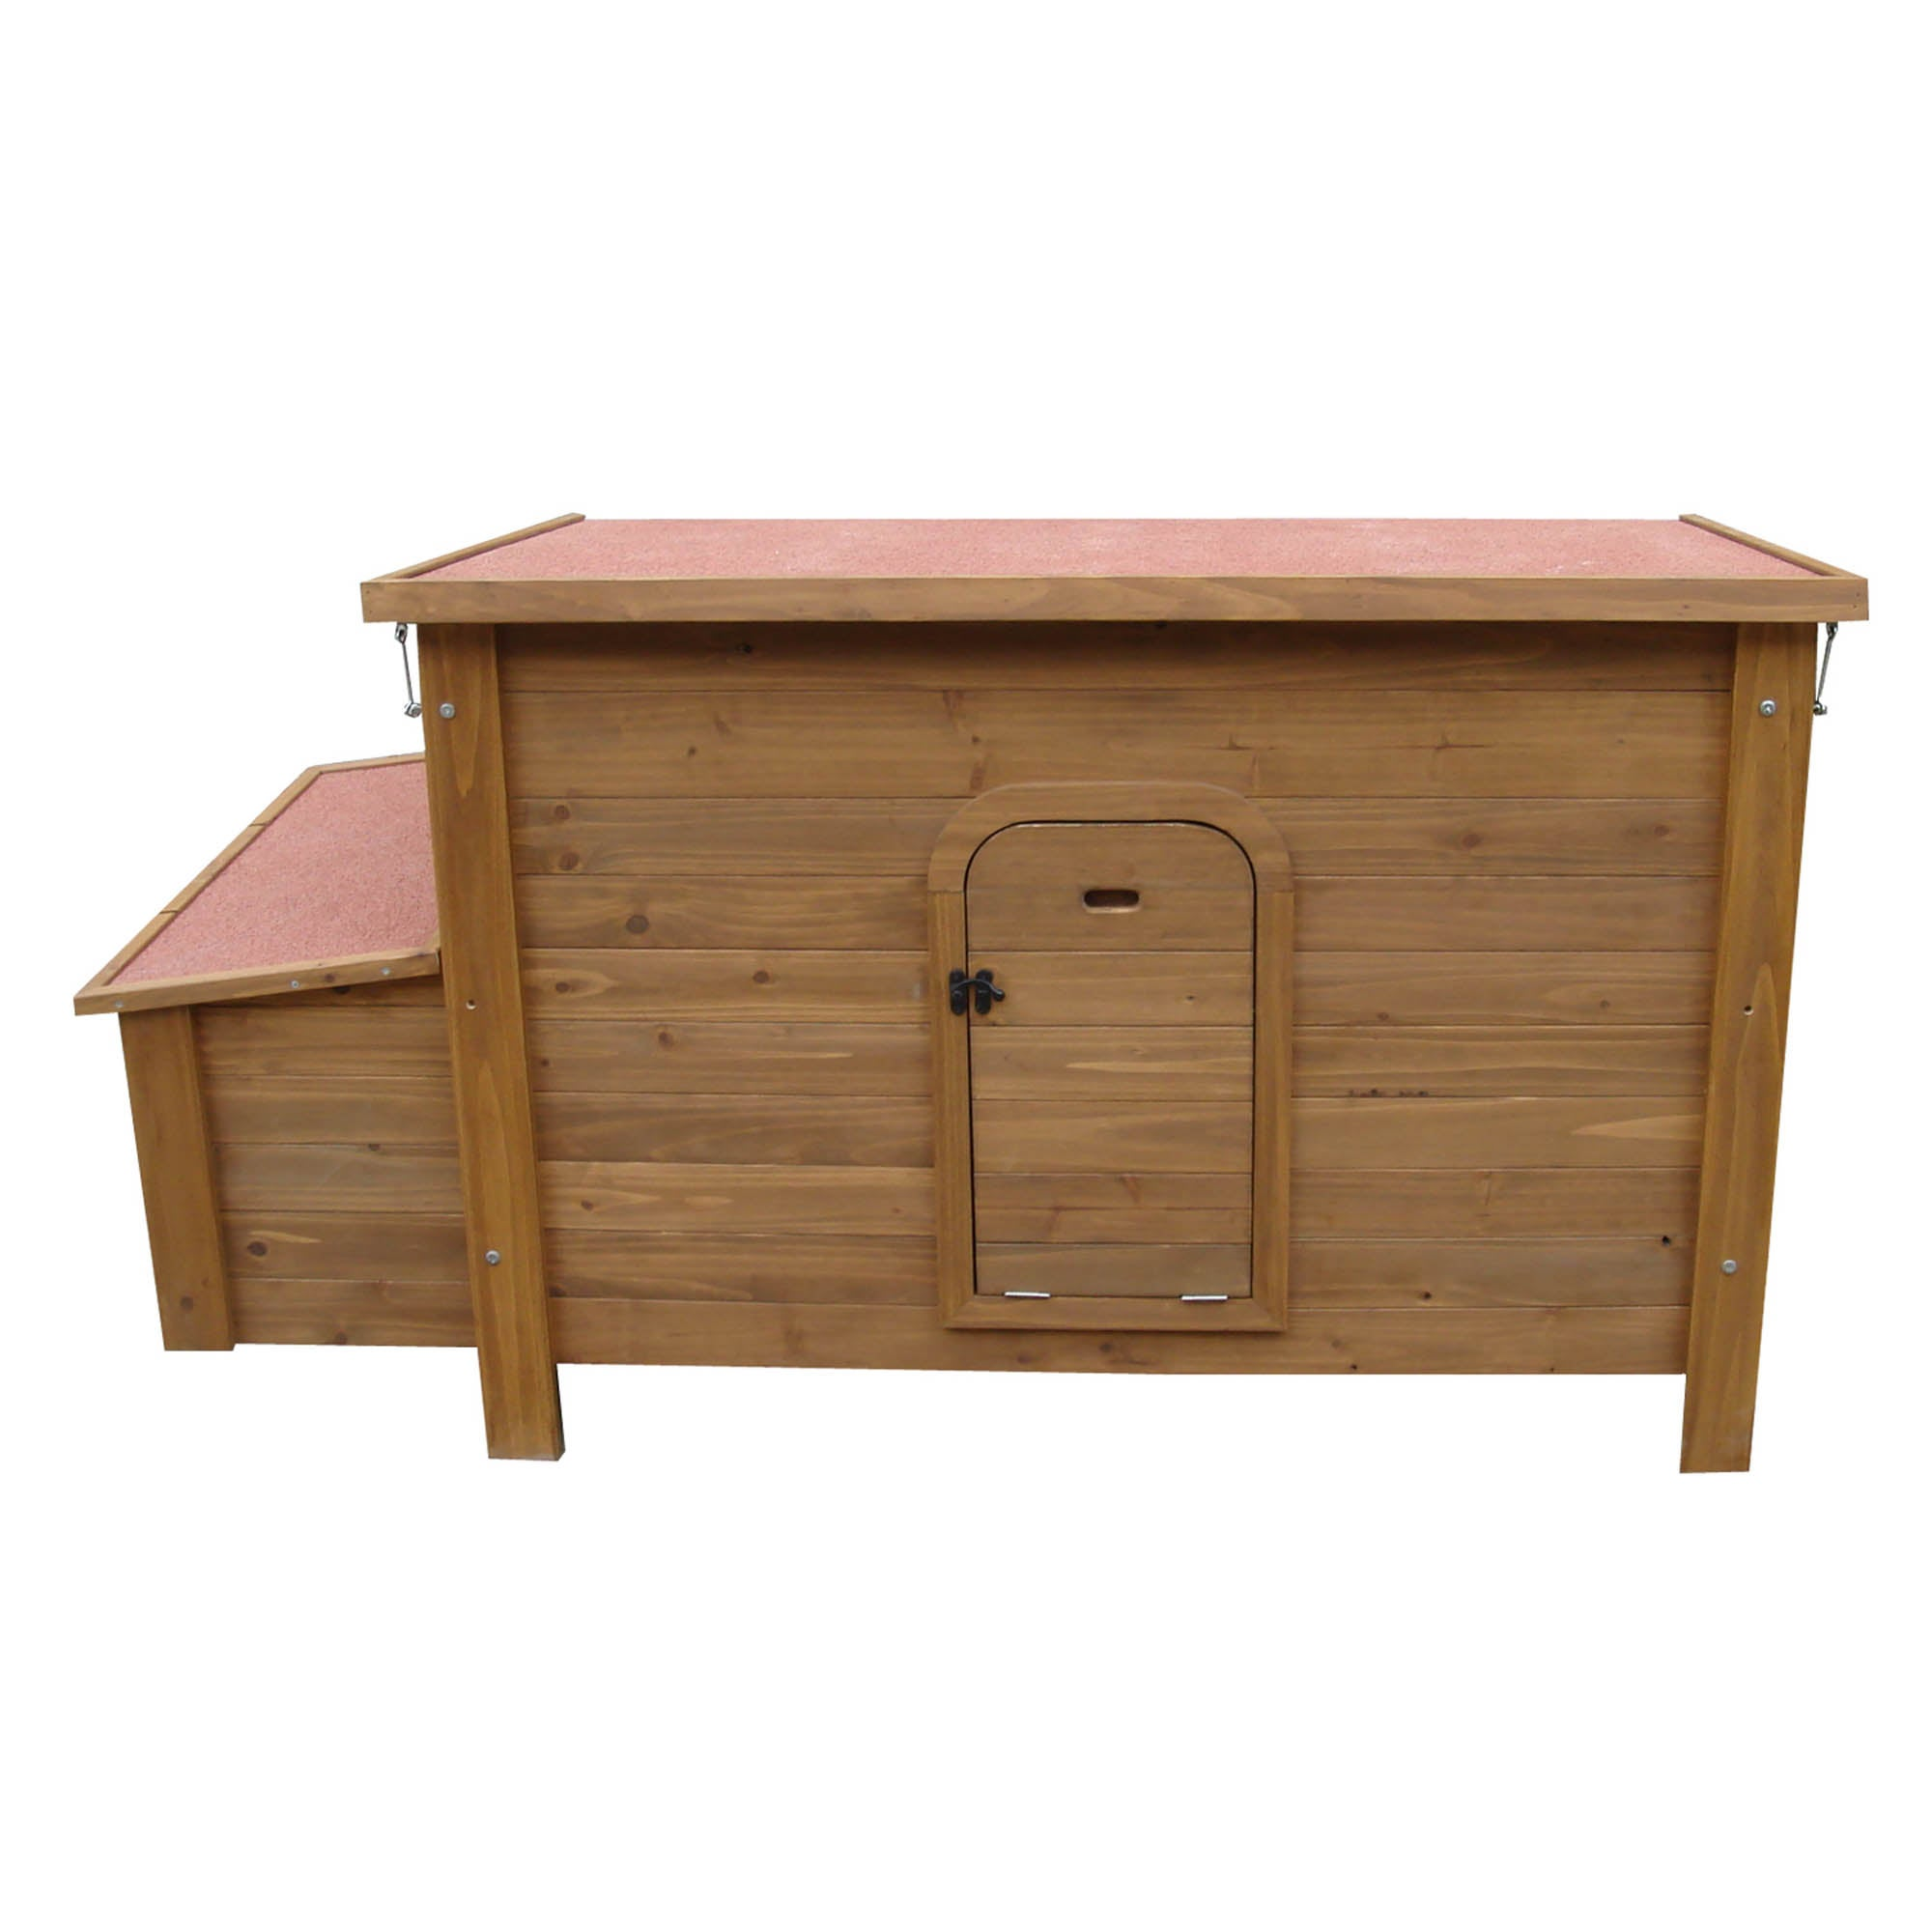 Small Chicken Coop Pine (Brown)